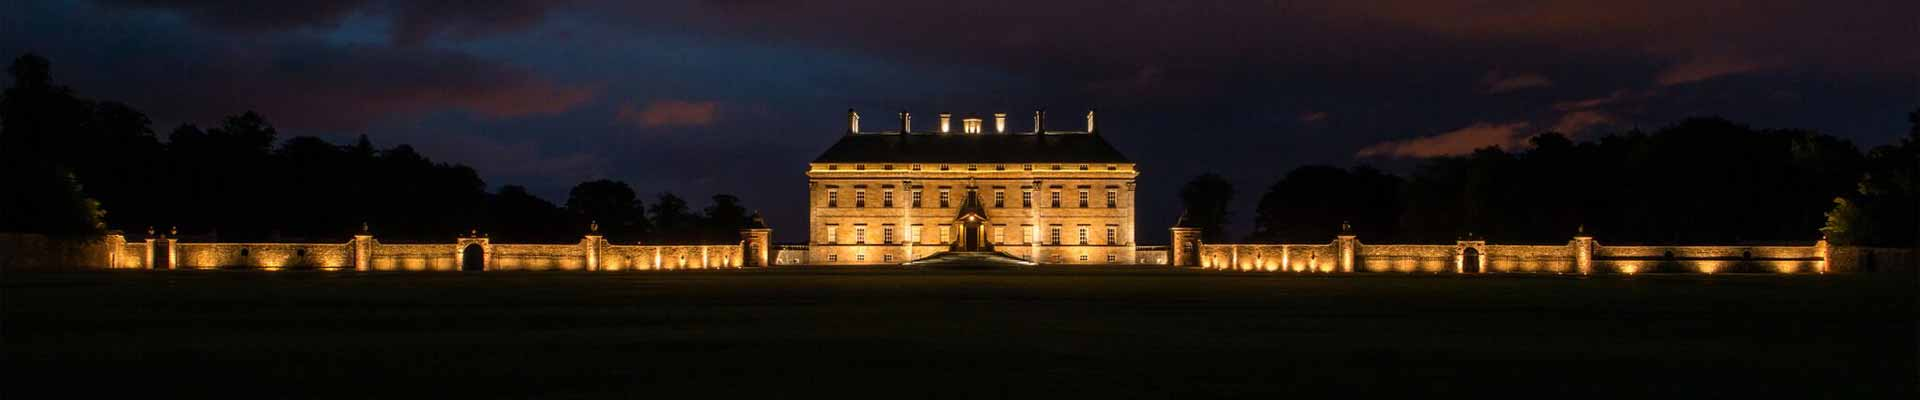 Photo of the stunning Kinross House at night